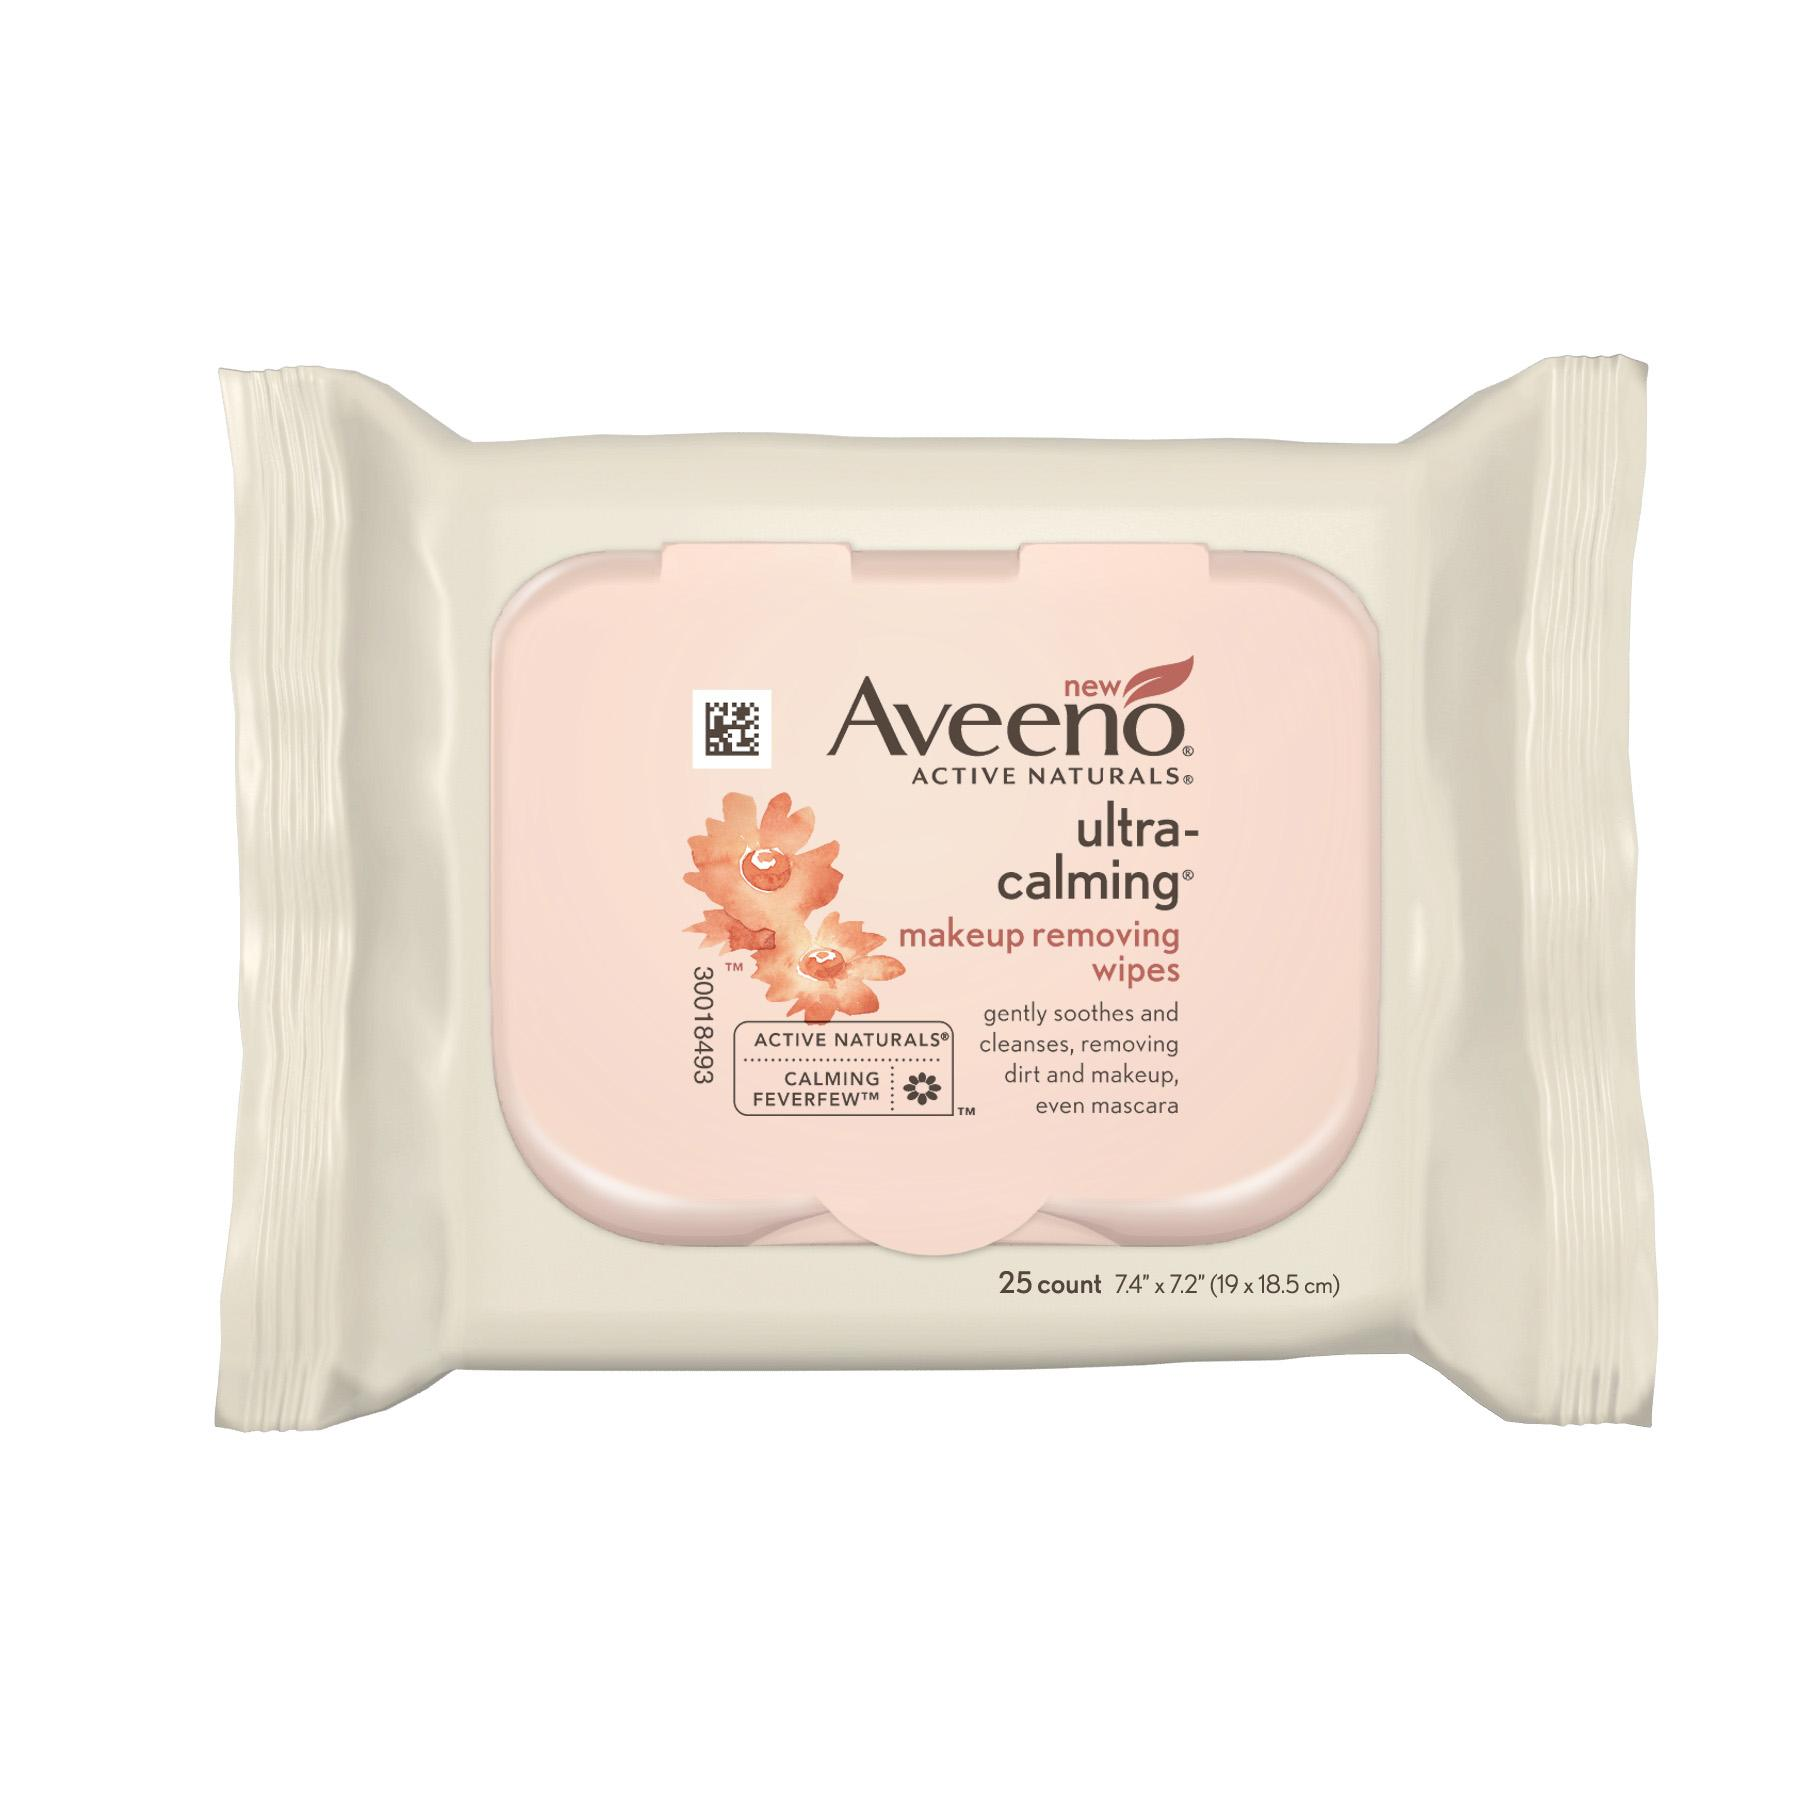 image of the Aveeno Active Naturals ultra-calming makeup removing wipes package that has a plastic resealable top.